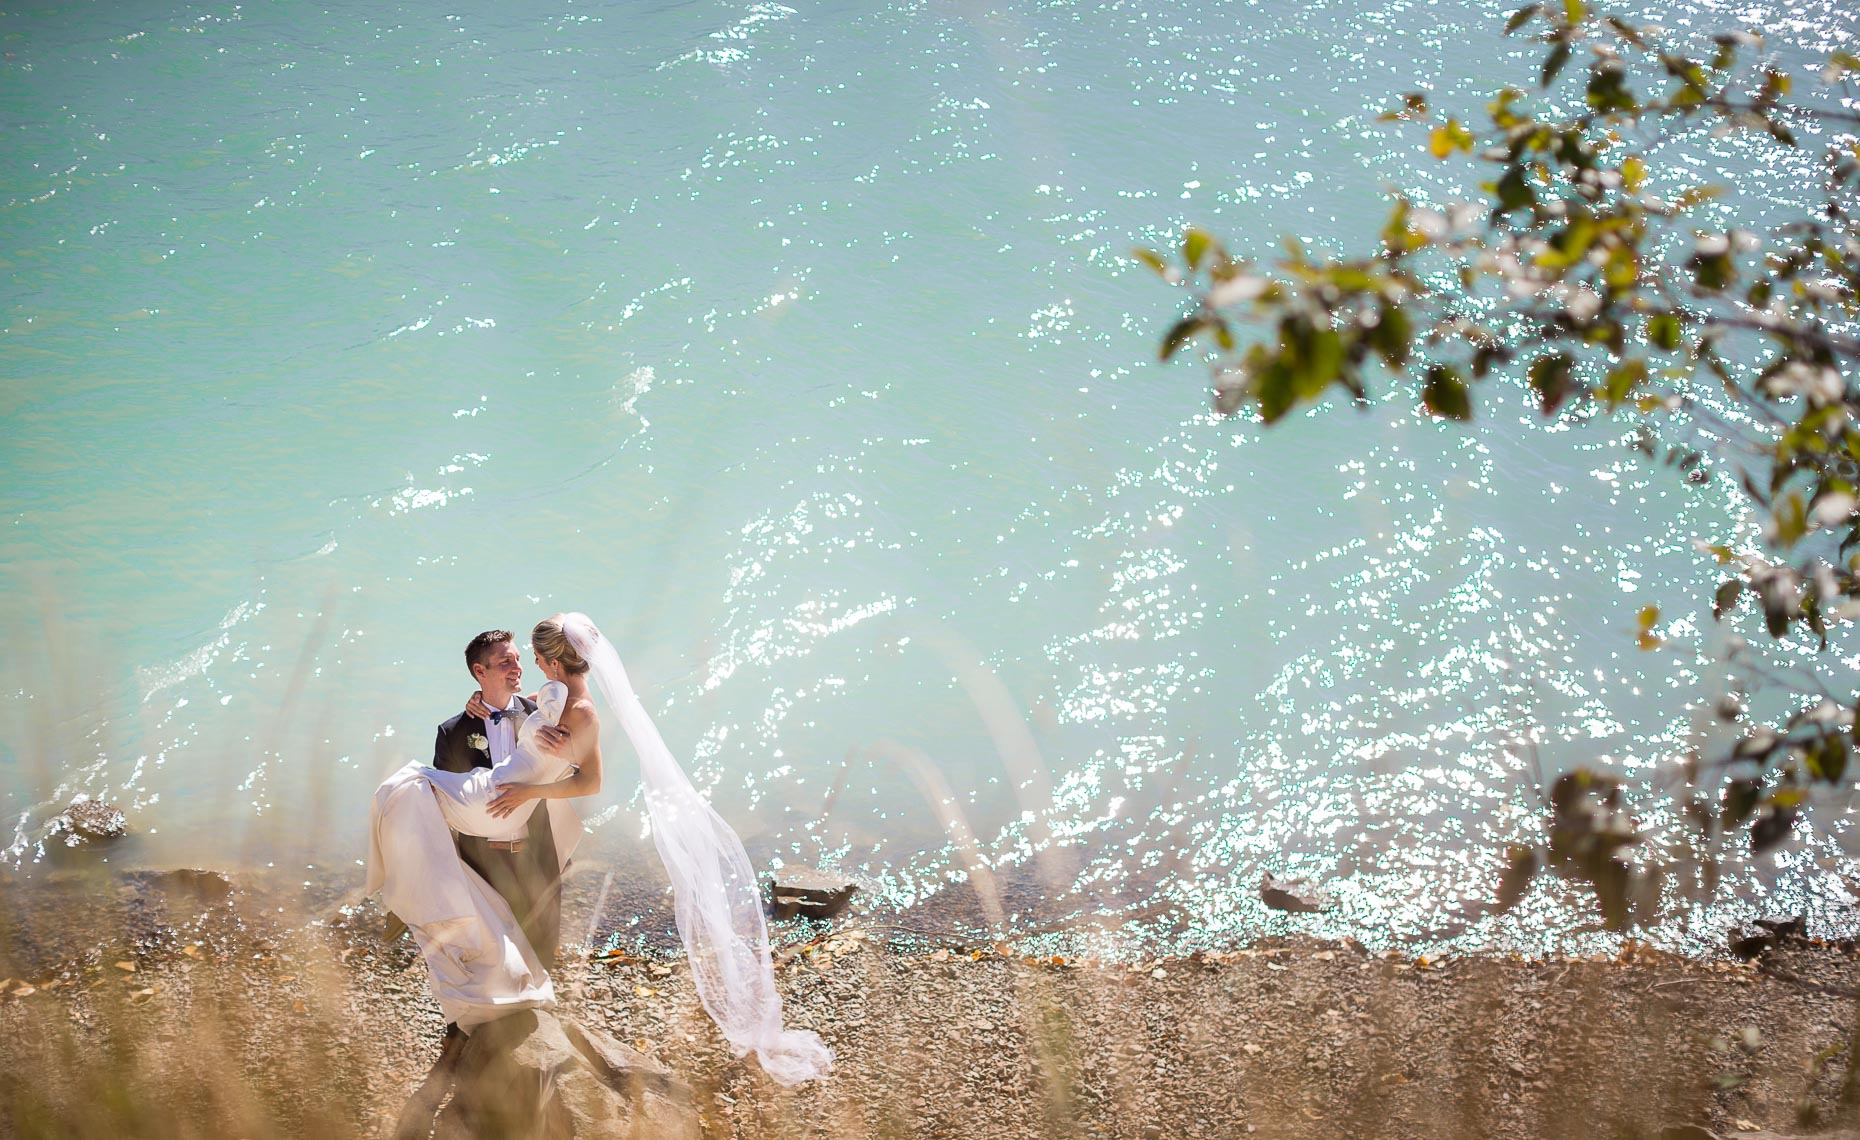 Turquoise lake water in romantic whistler wedding couple portrait